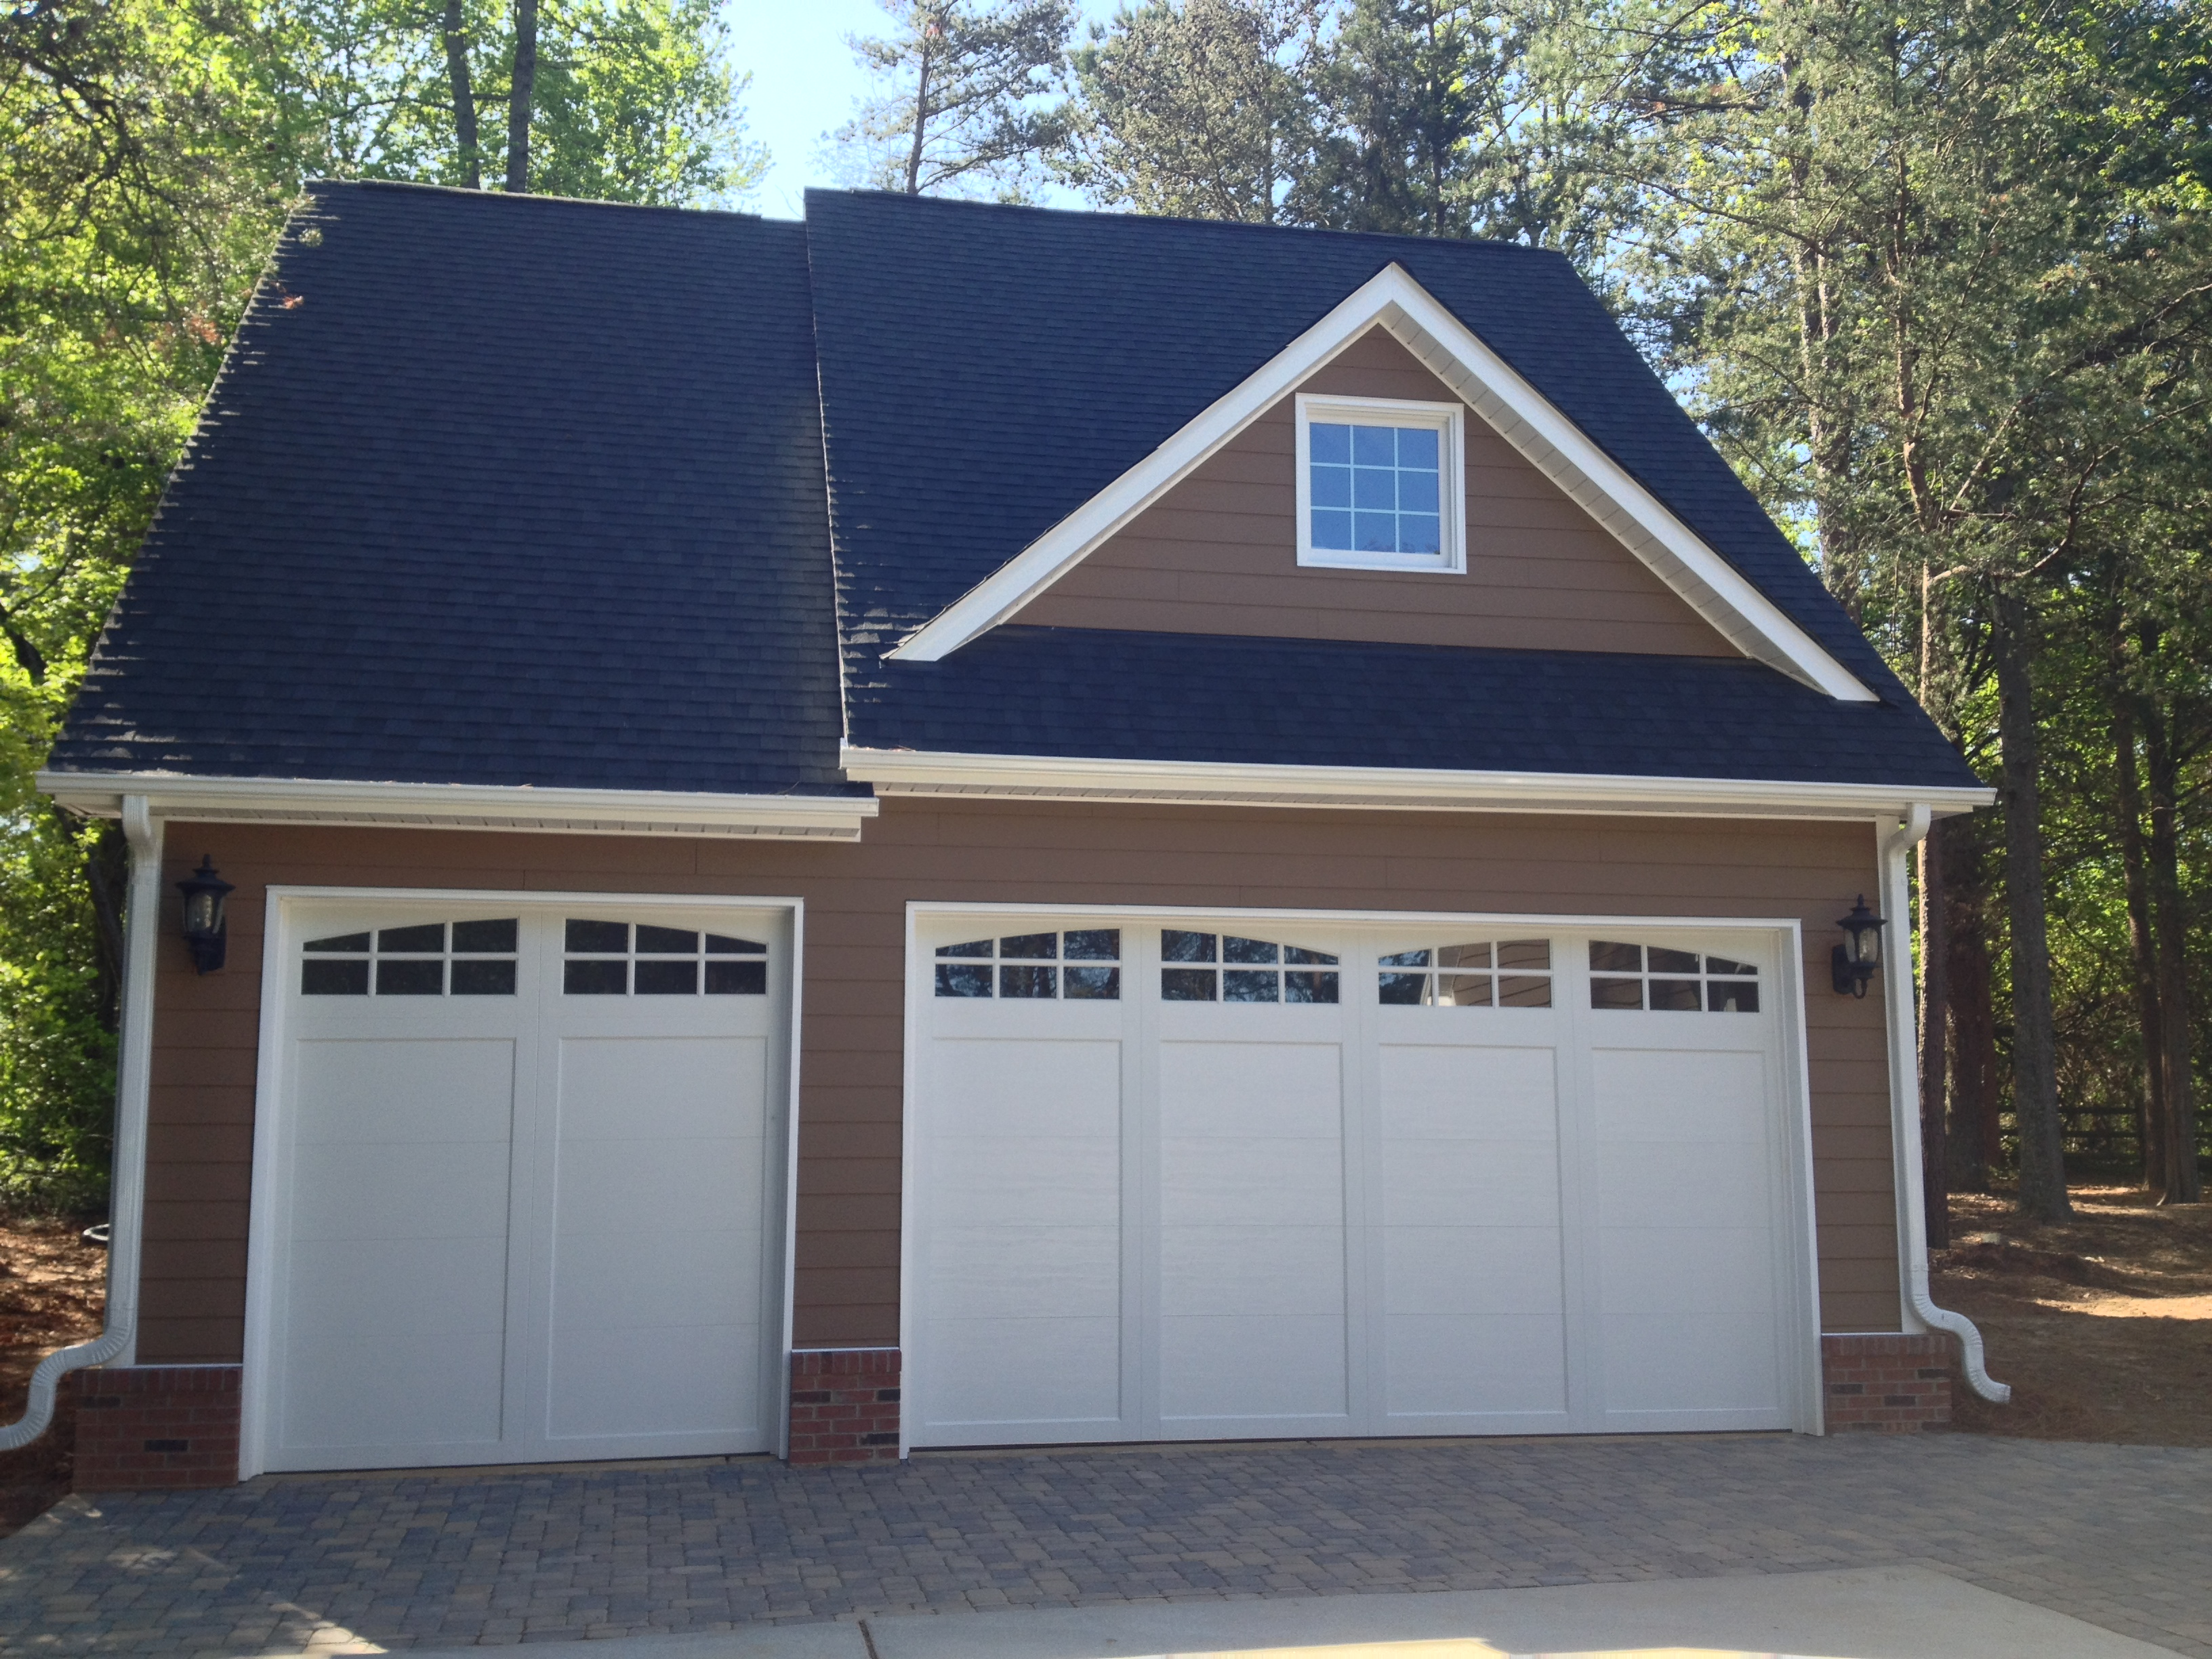 3 car detached garage cornelius nc henderson building for Building detached garage cost